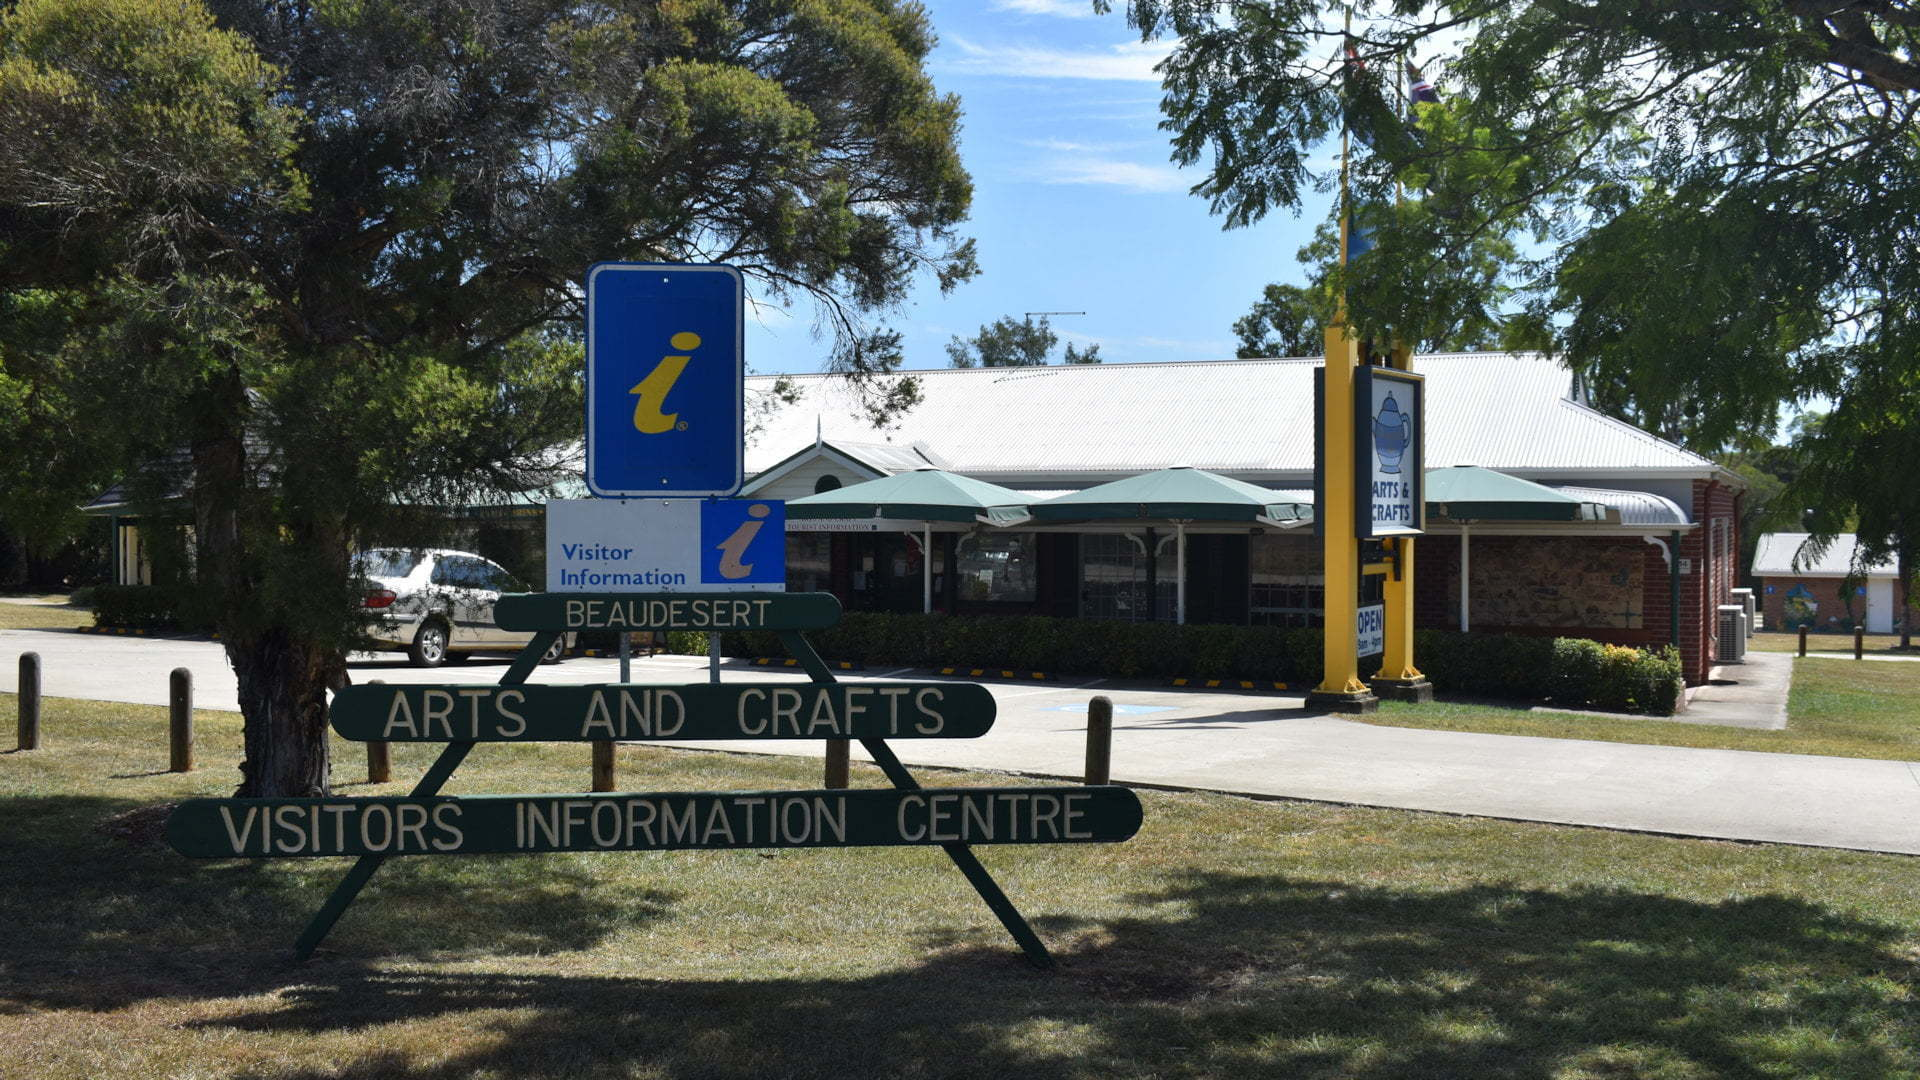 Beaudesert Arts and Crafts Visitor Information Centre